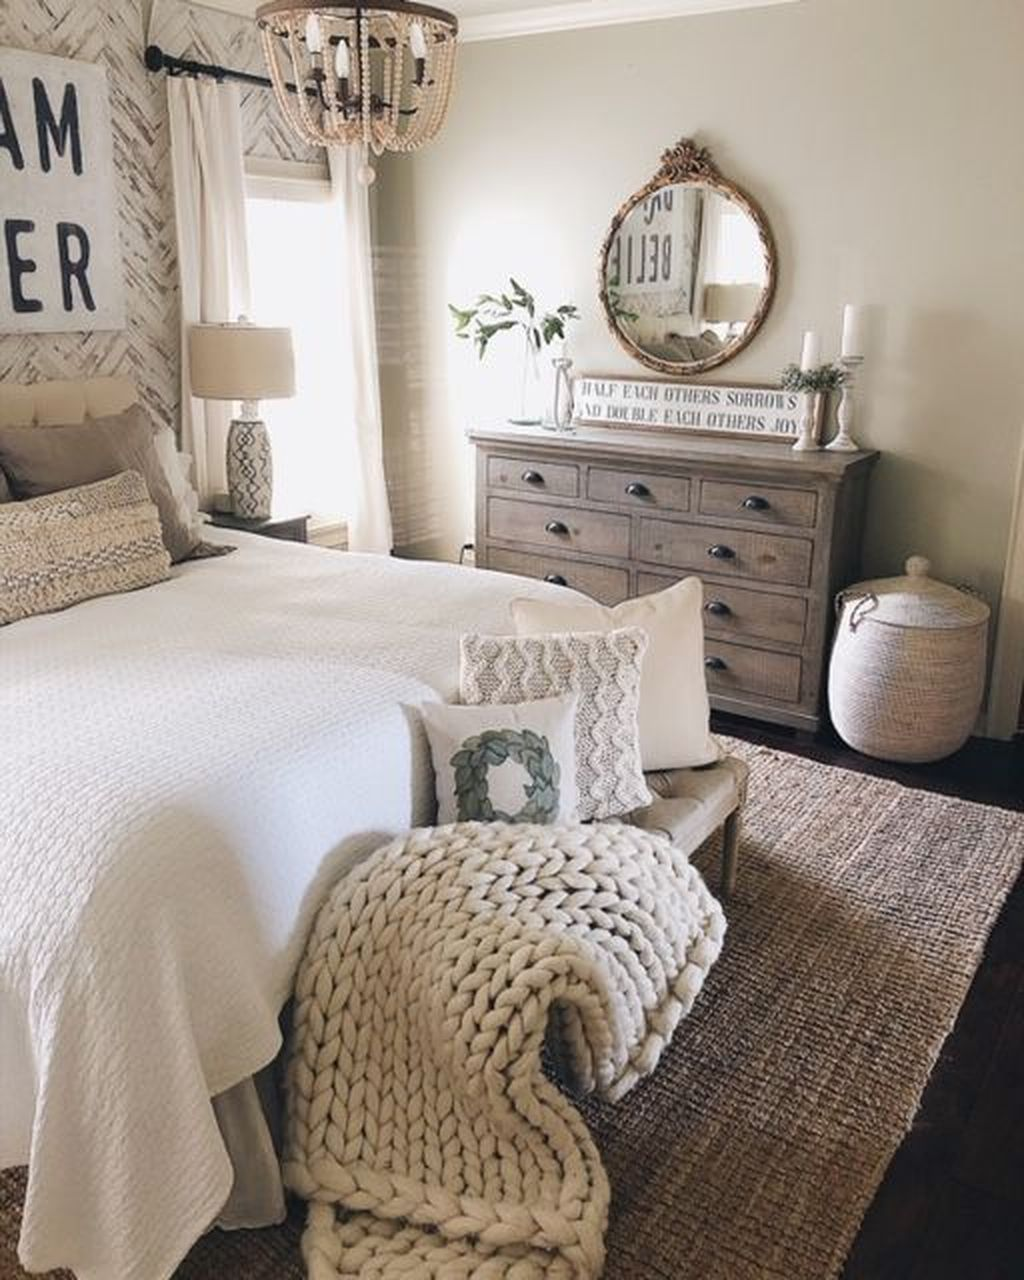 41 Stunning Farmhouse Bedroom Decor Ideas In 2020 With Images